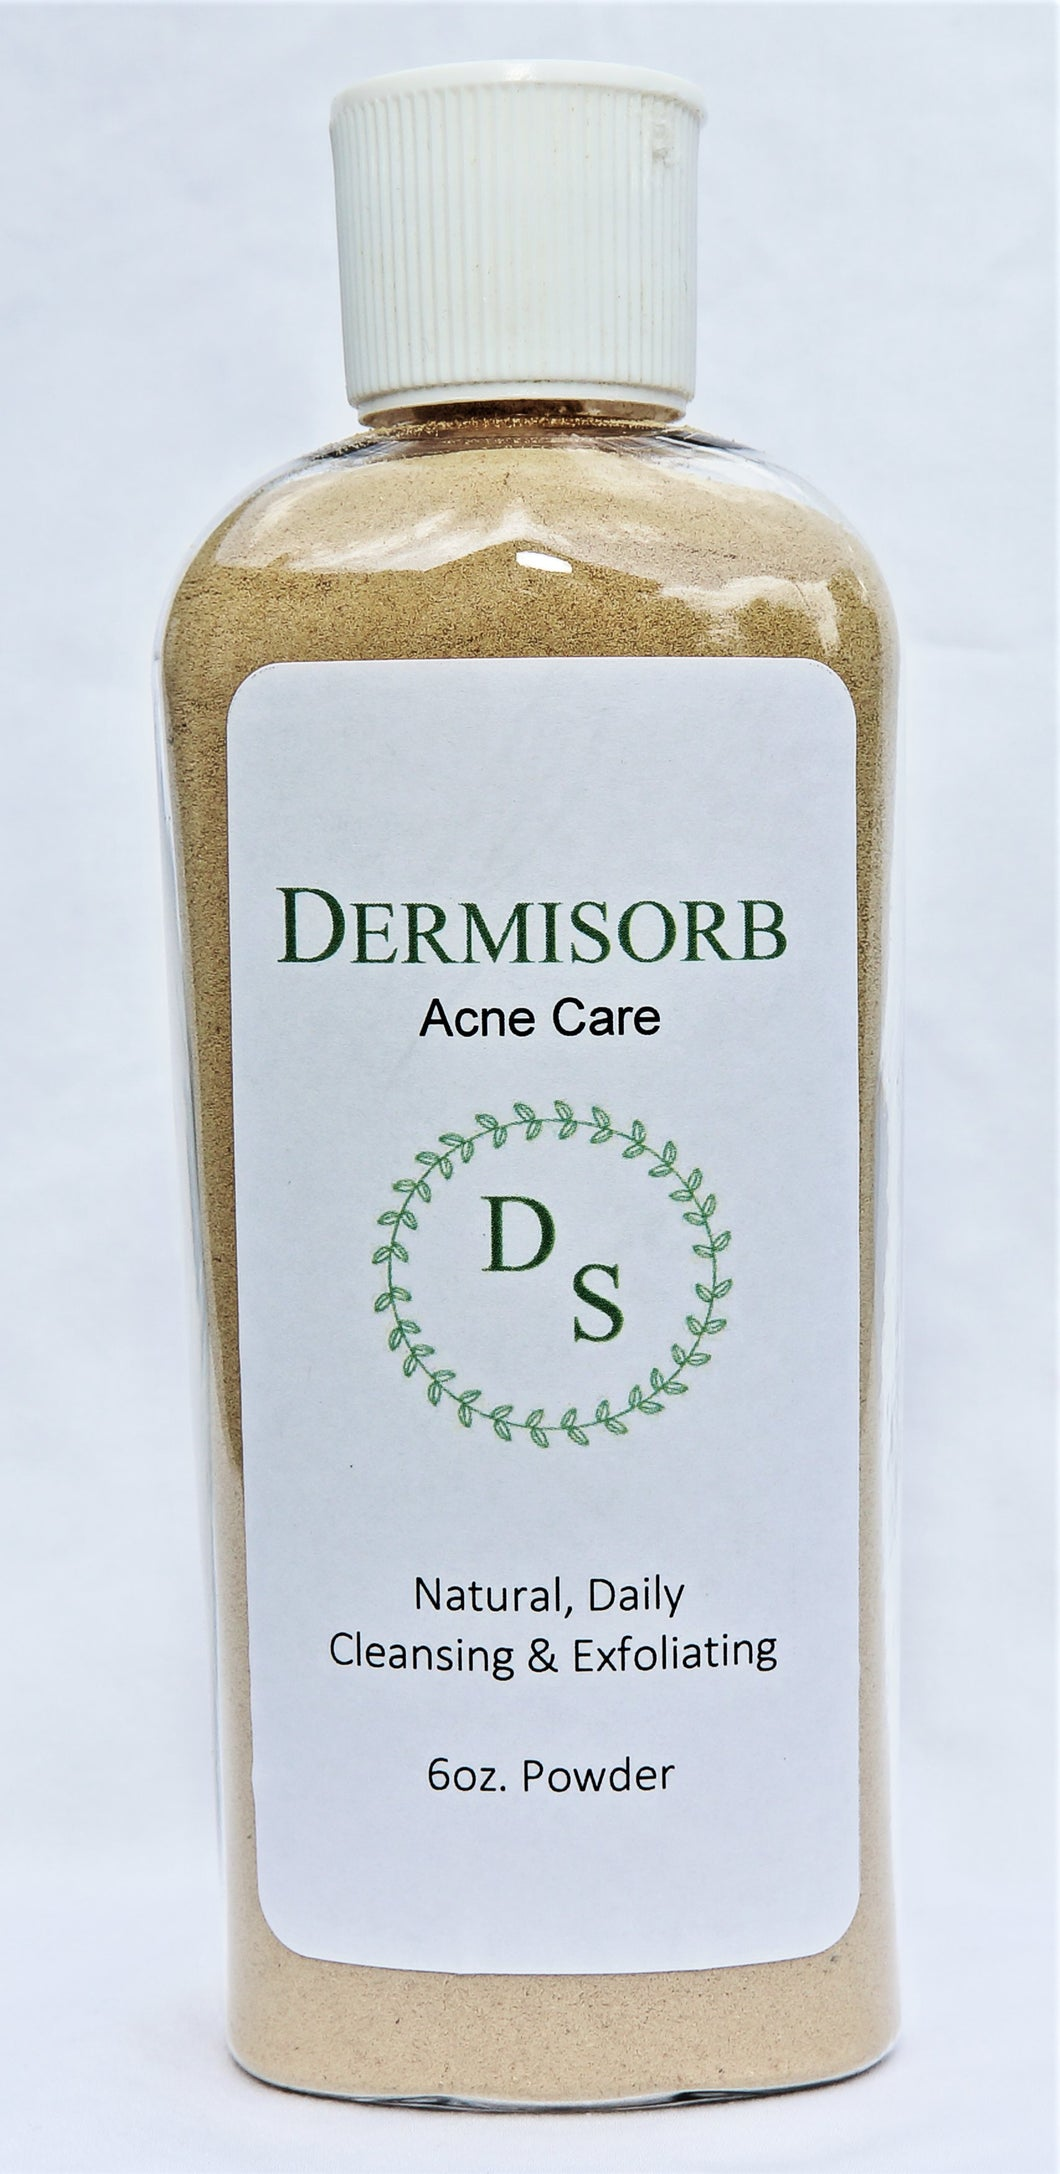 DermiSorb Acne Care, bottle:  6-oz powder